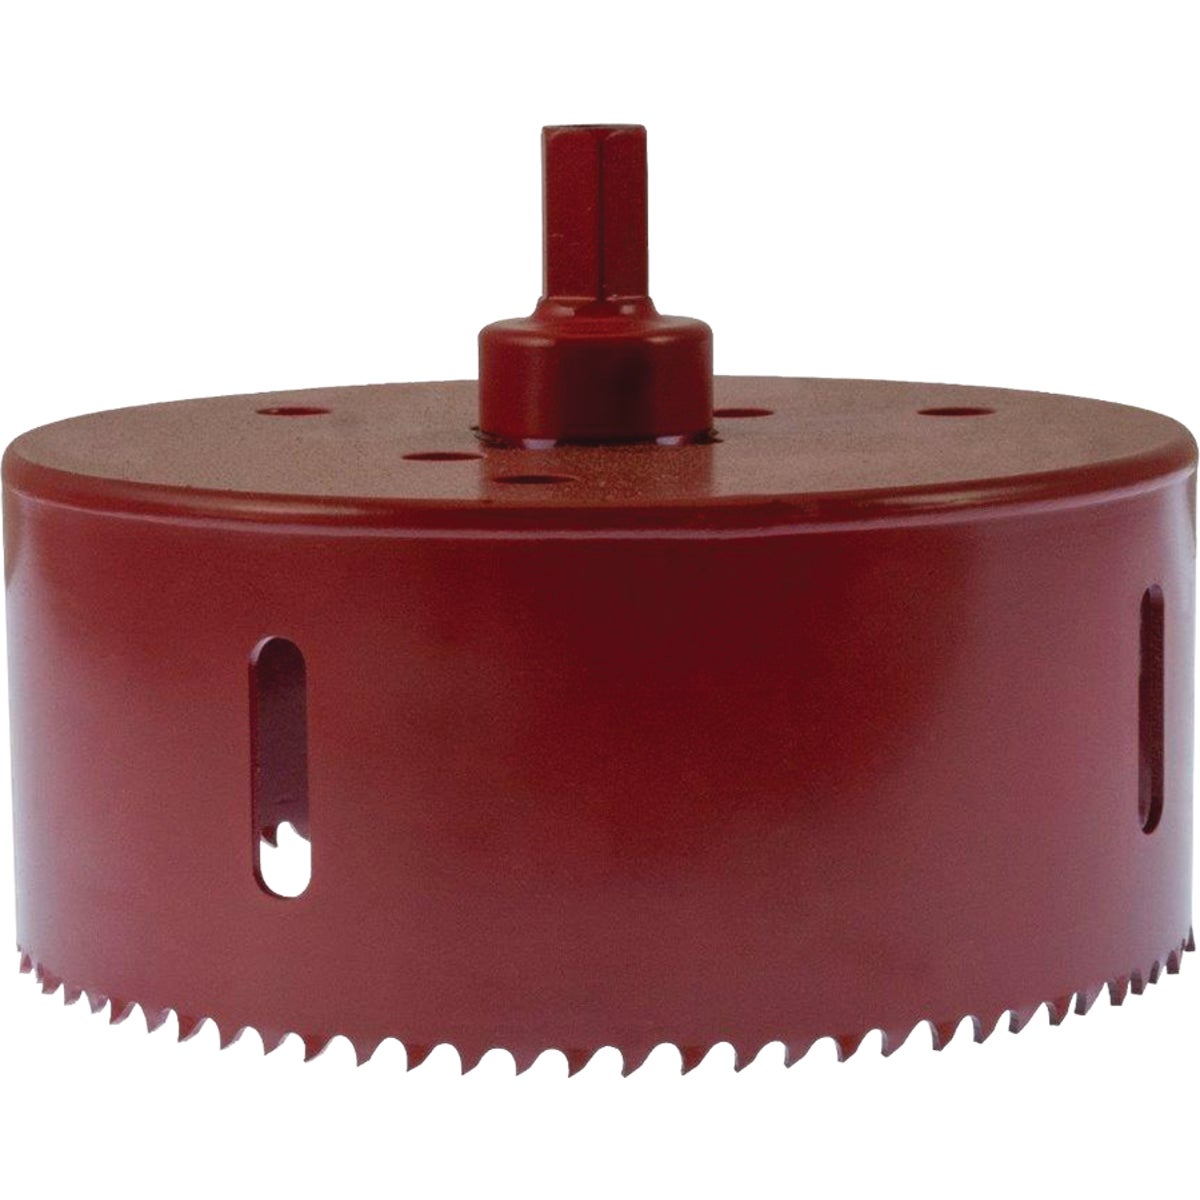 "4-1/2"" HOLE SAW - 311308 by M K Morse Co"